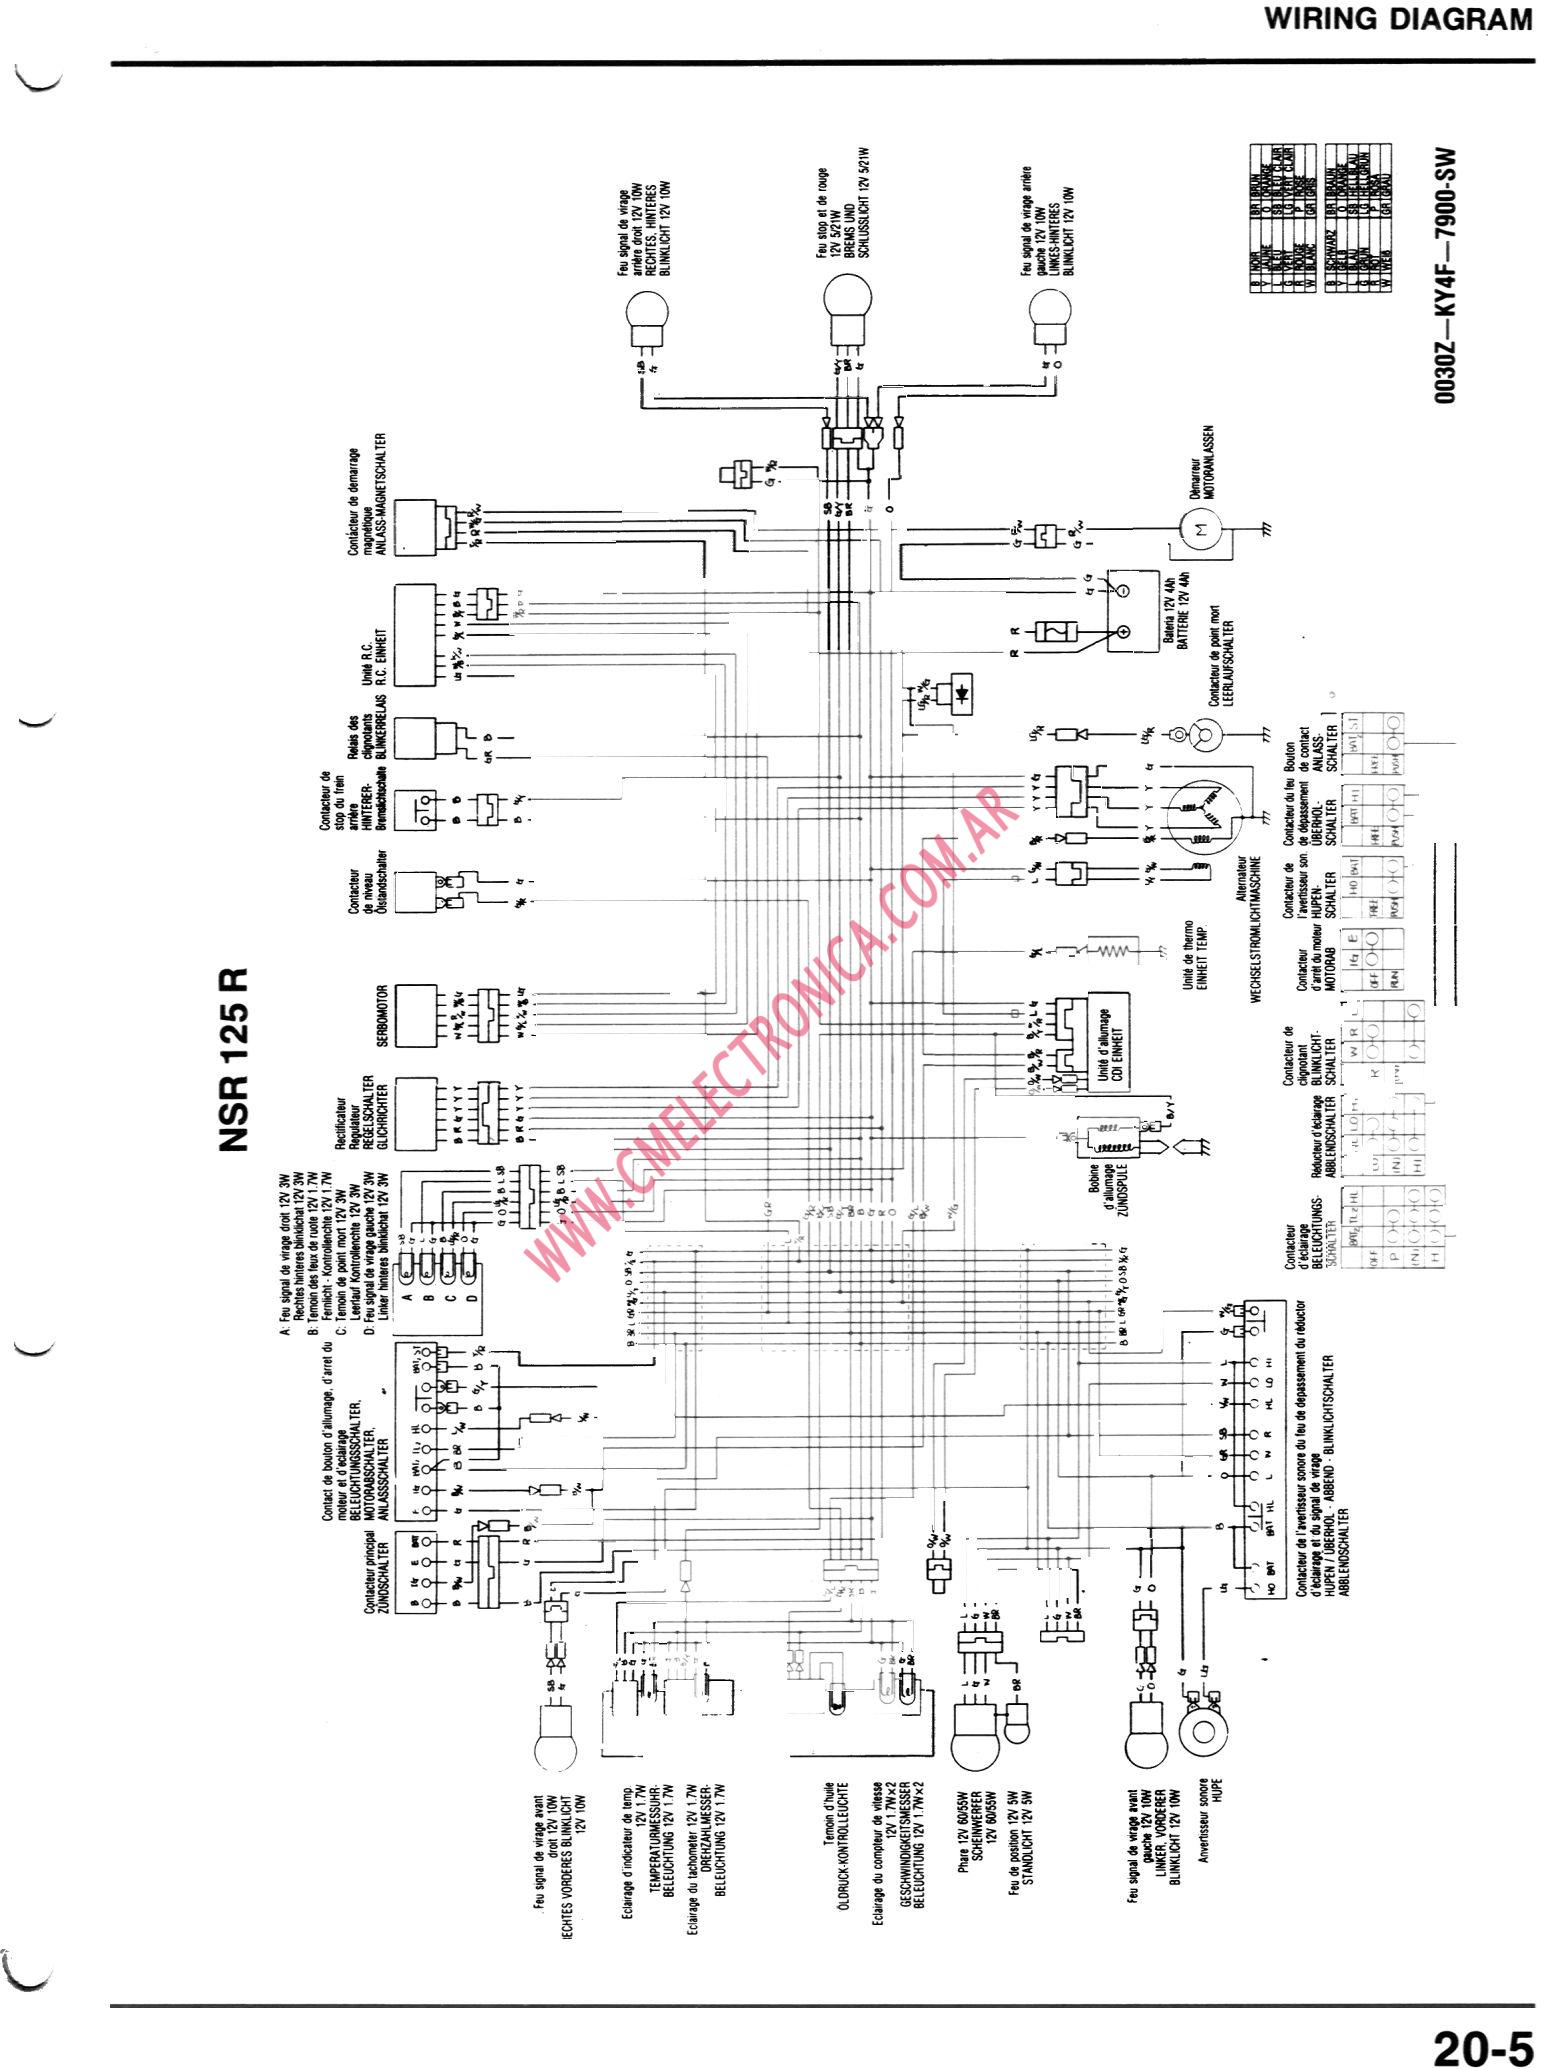 honda xrm cdi wiring diagram what is a phase diagrama nsr125